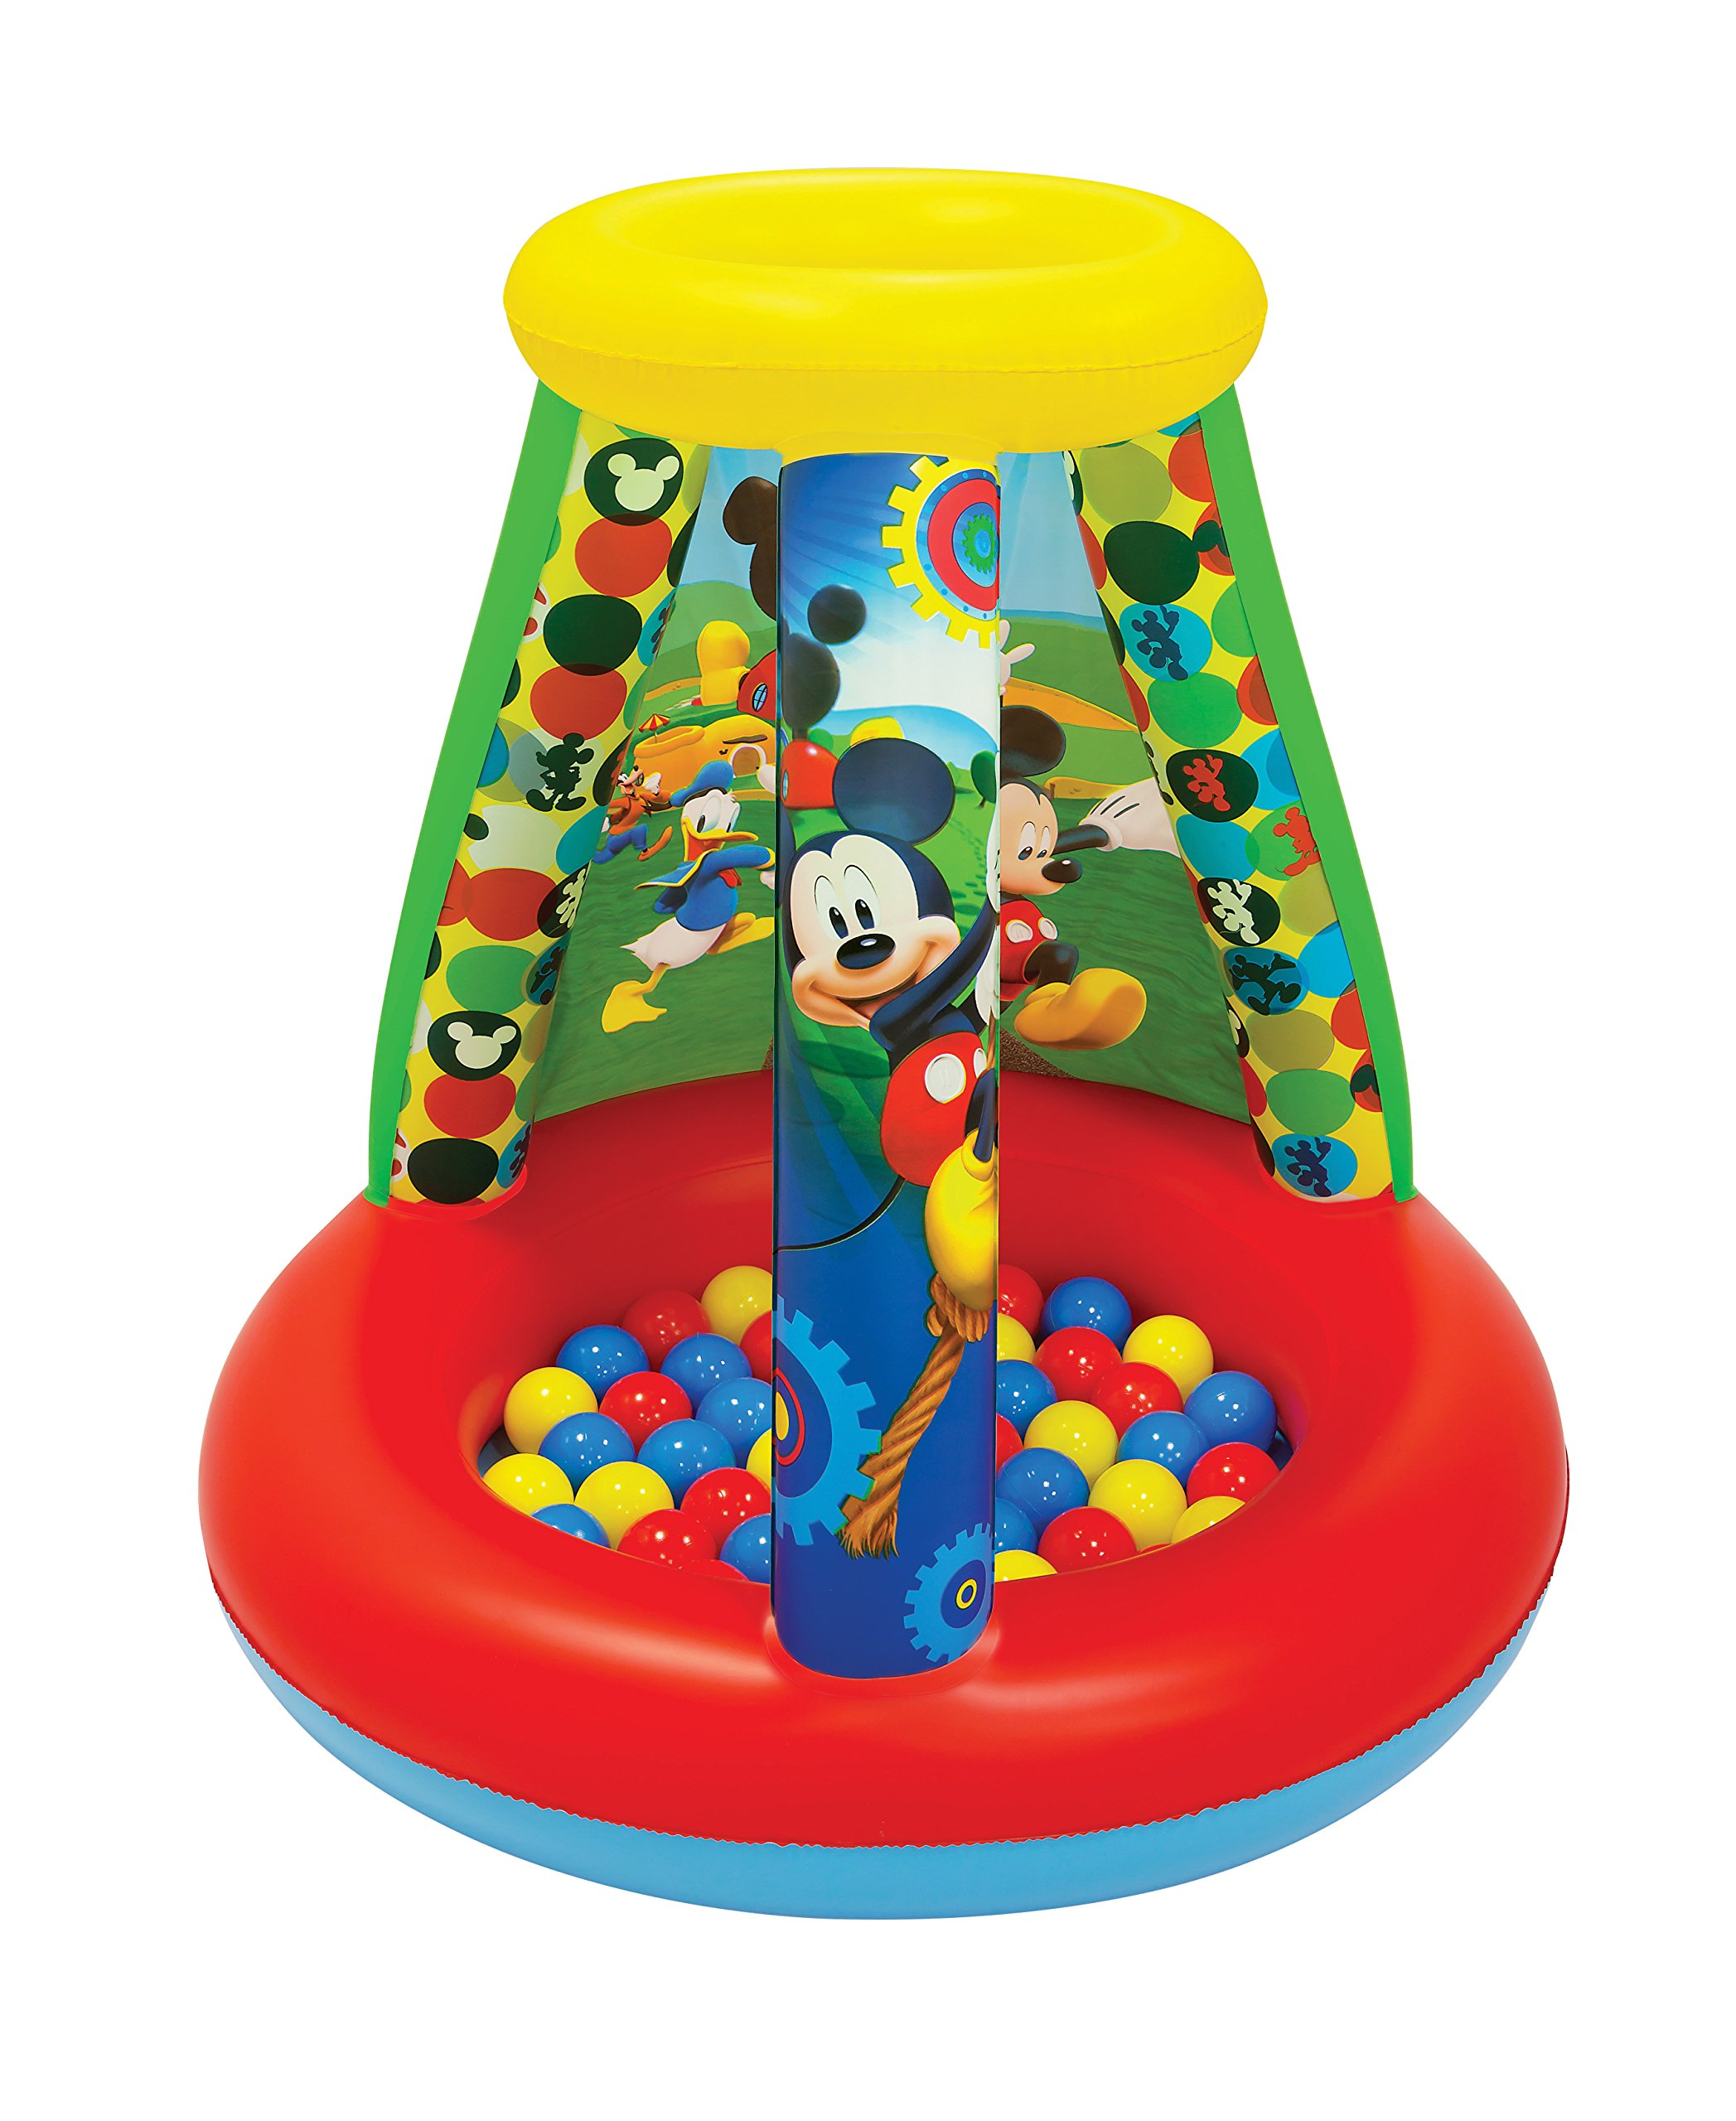 Mickey Mouse Club House Follow Mickey Ball Pit, 1 Inflatable & 15 Sof-Flex Balls, Red/Yellow, 28'' W x 28'' D x 33'' H